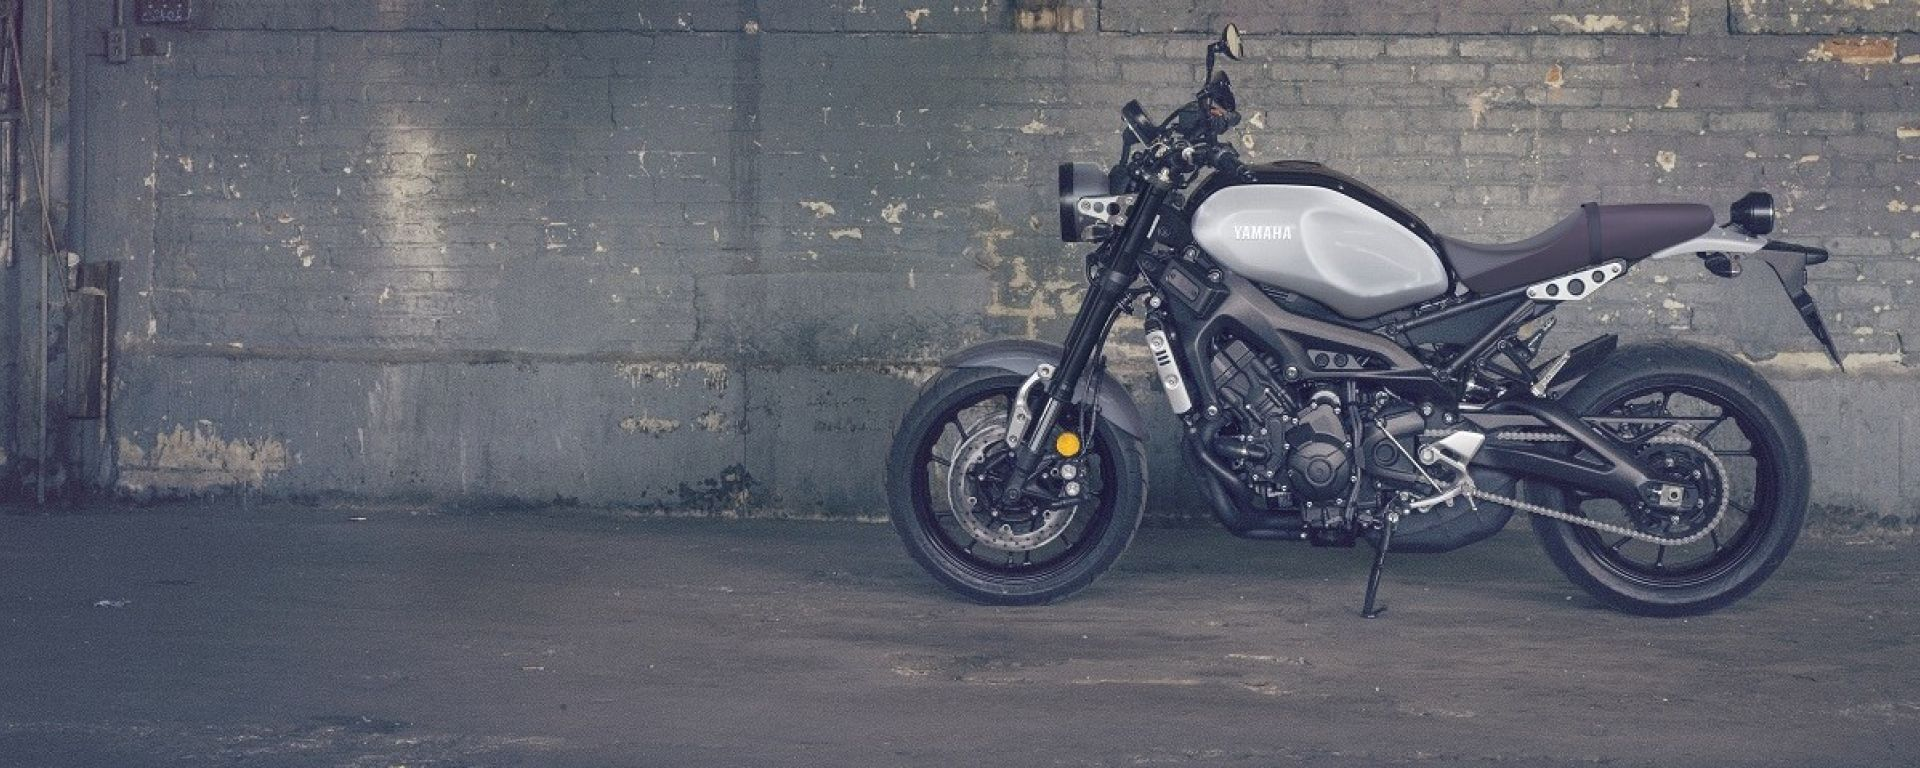 Yamaha Faster Sons, XSR900